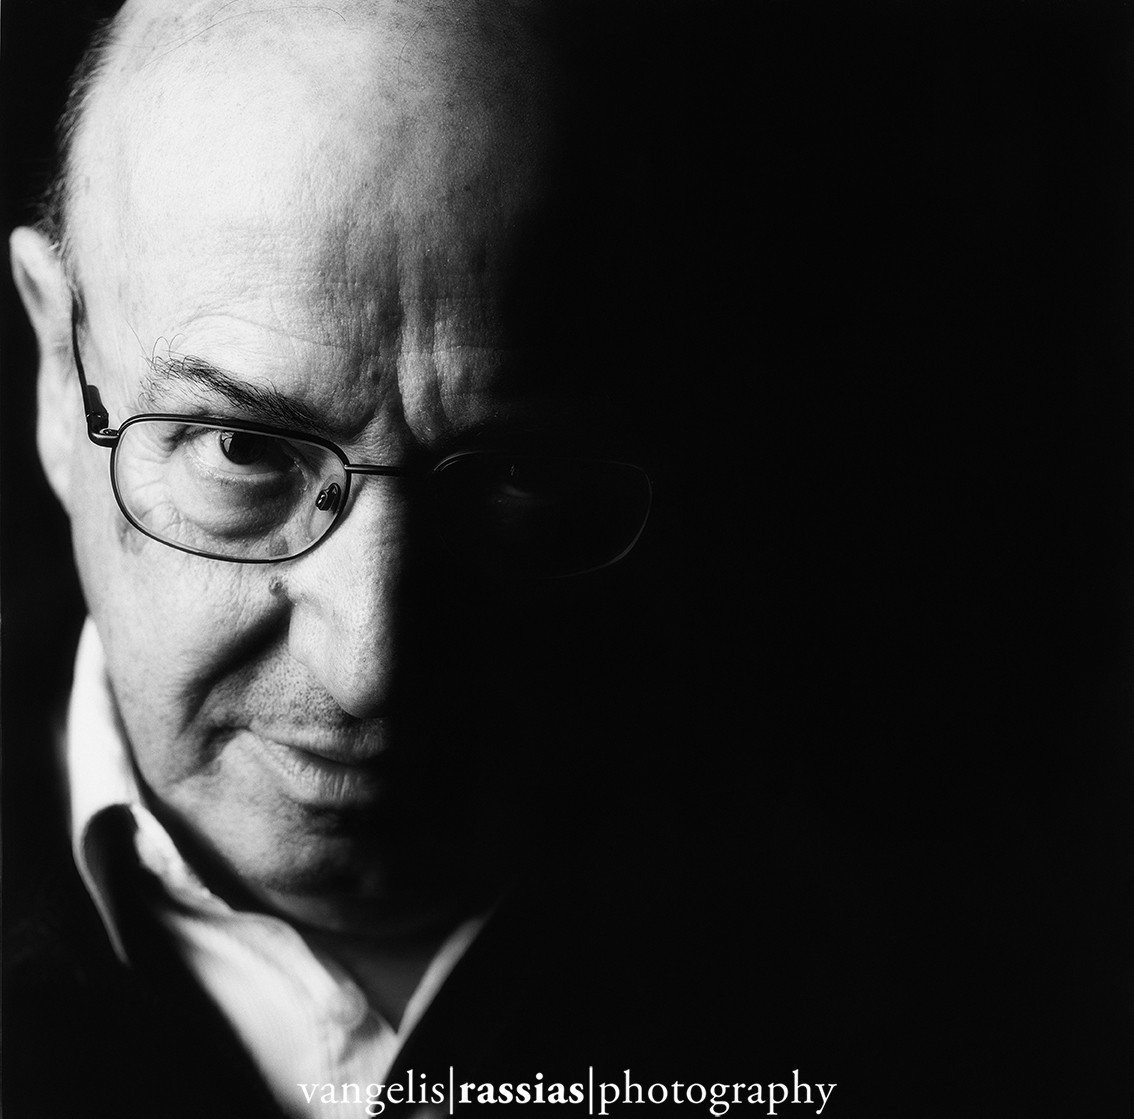 2-C-B W--ANGELOPOULOS THEO-01